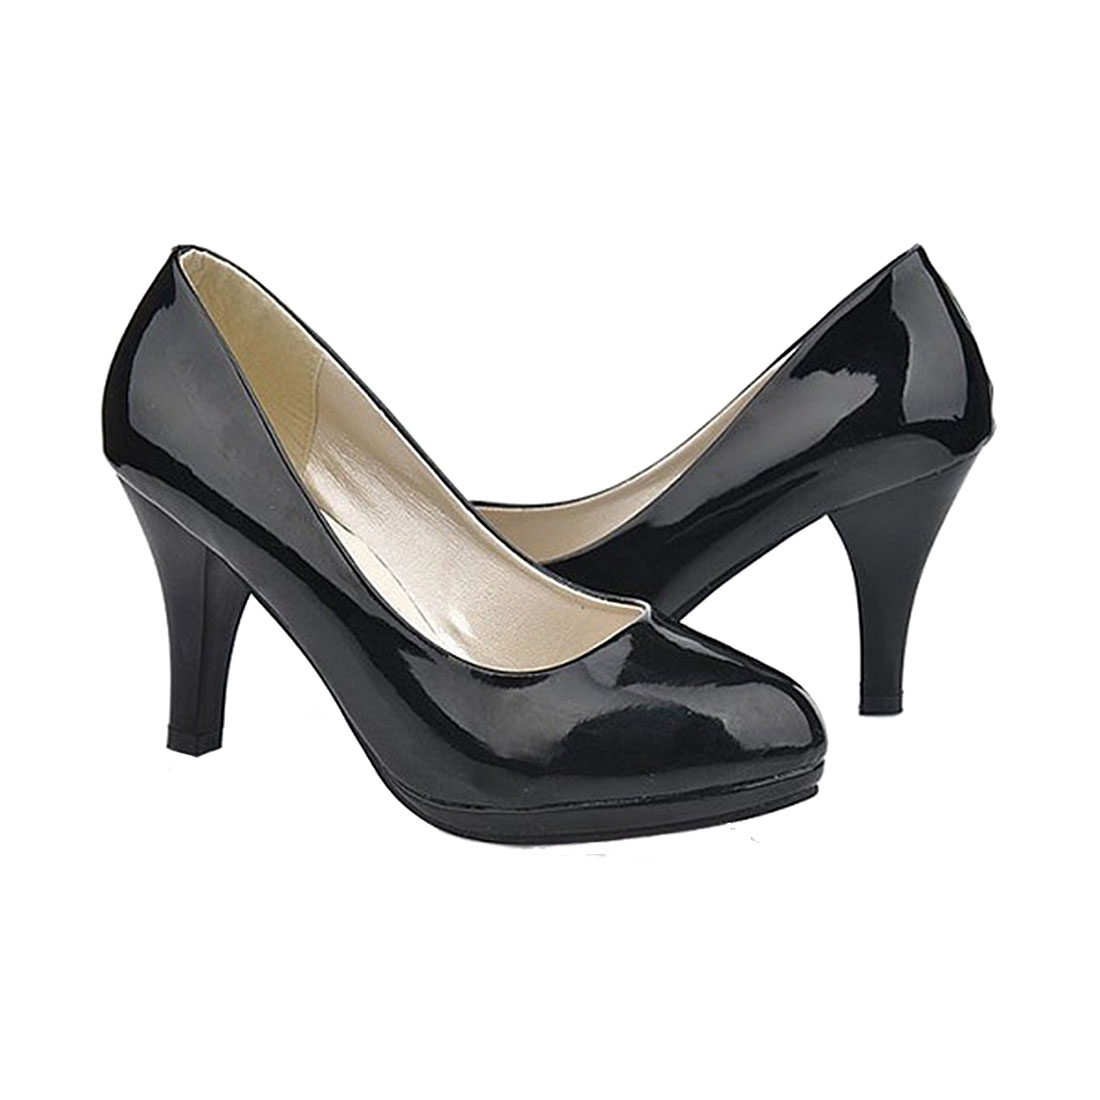 Hot Fashion Classic Sexy office lady round Toe platform low Heels Women wedding Pumps Shoes Black plus size 2017 hot sale fashion style classic women pumps leisure round toe slip on med heels mature office lady easy walking hot shoes